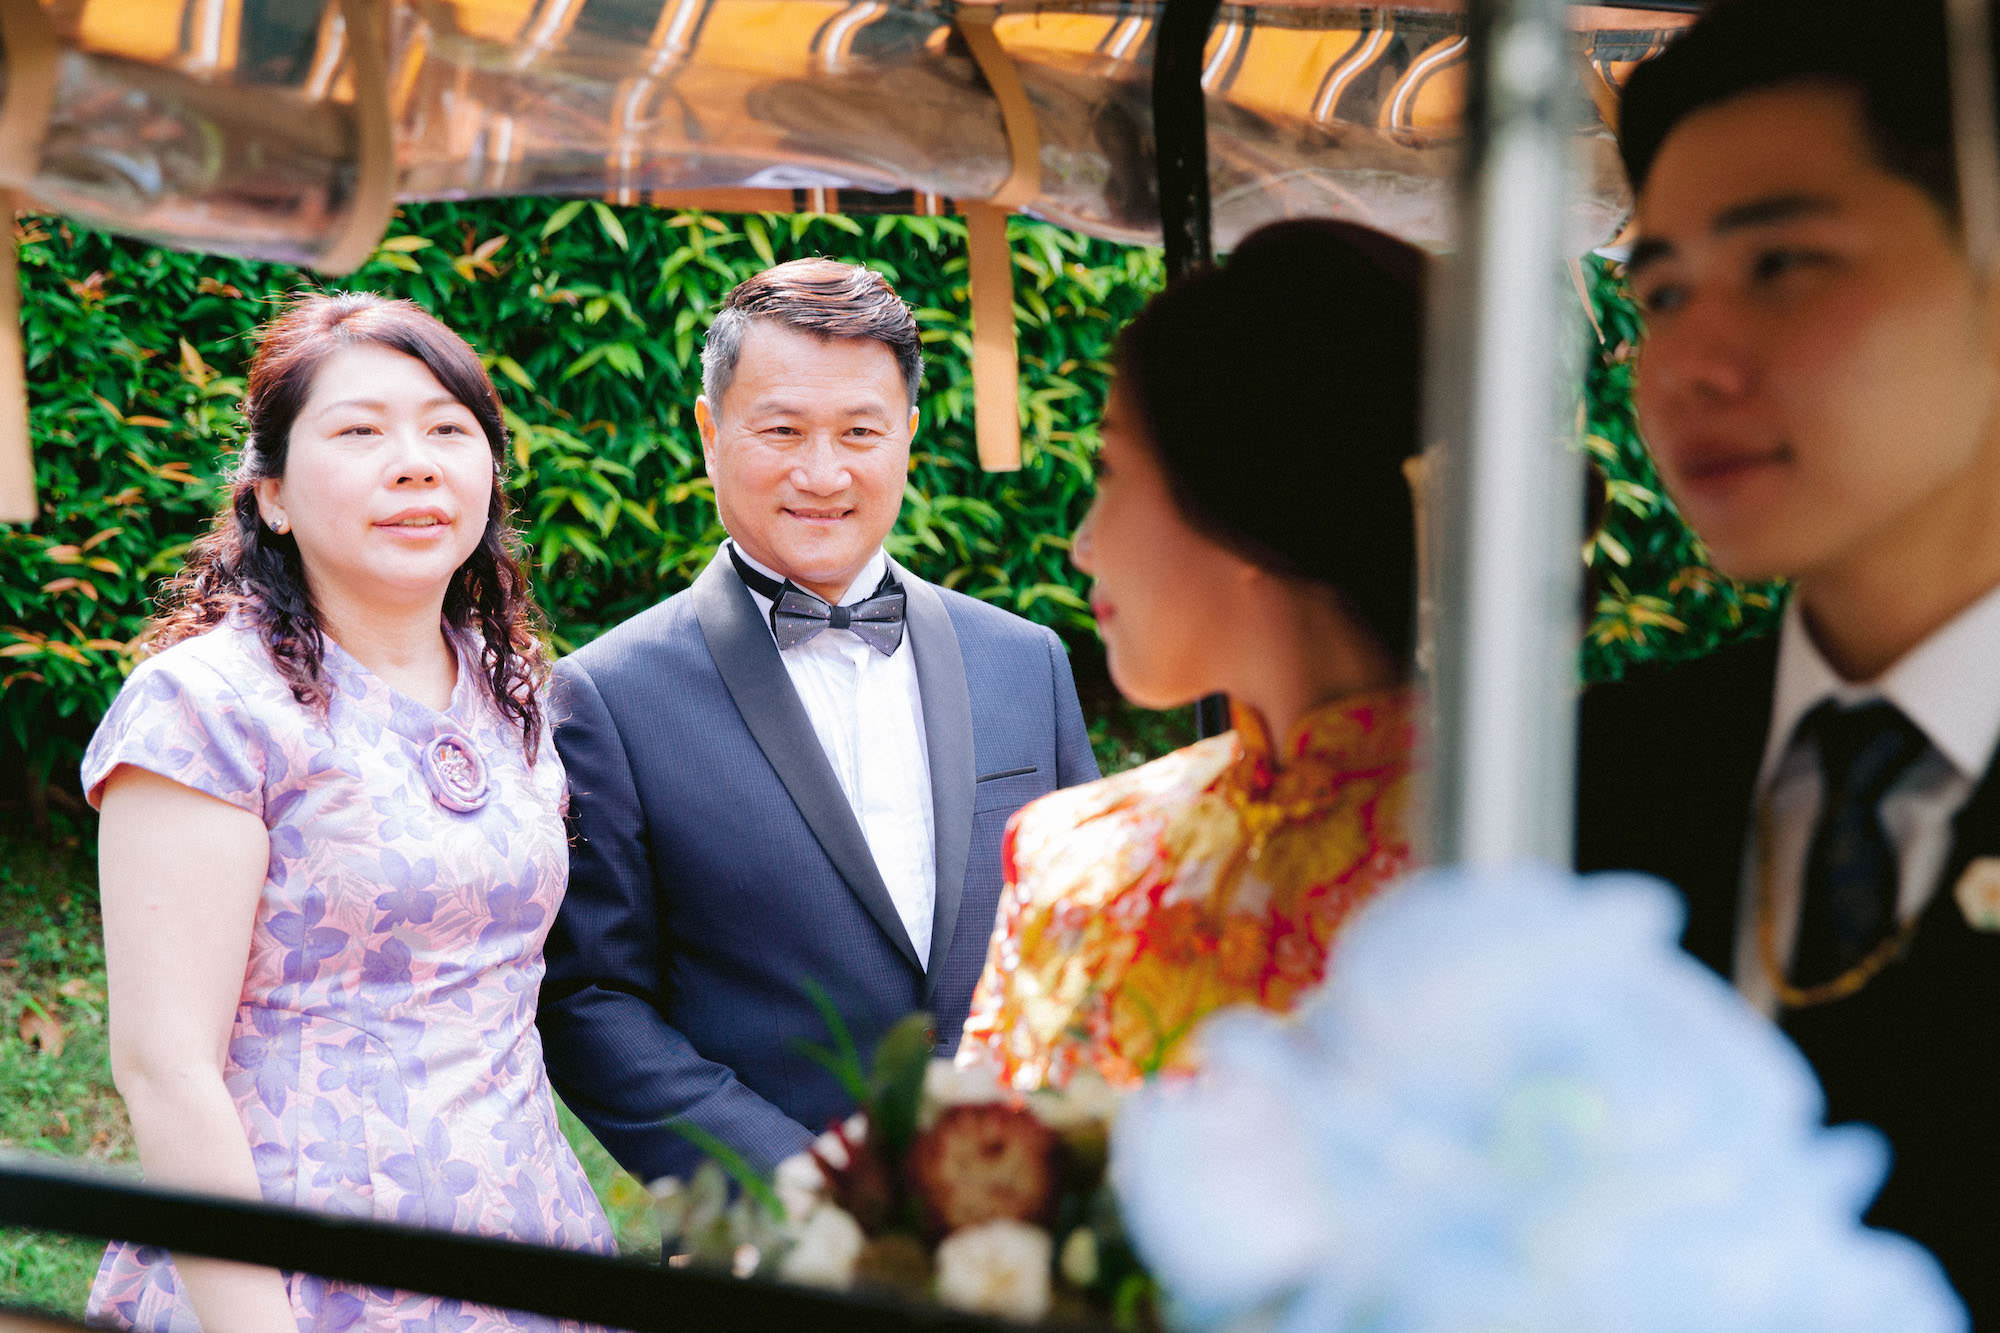 Freida & Winson - Singapore Wedding Photography  38.jpg